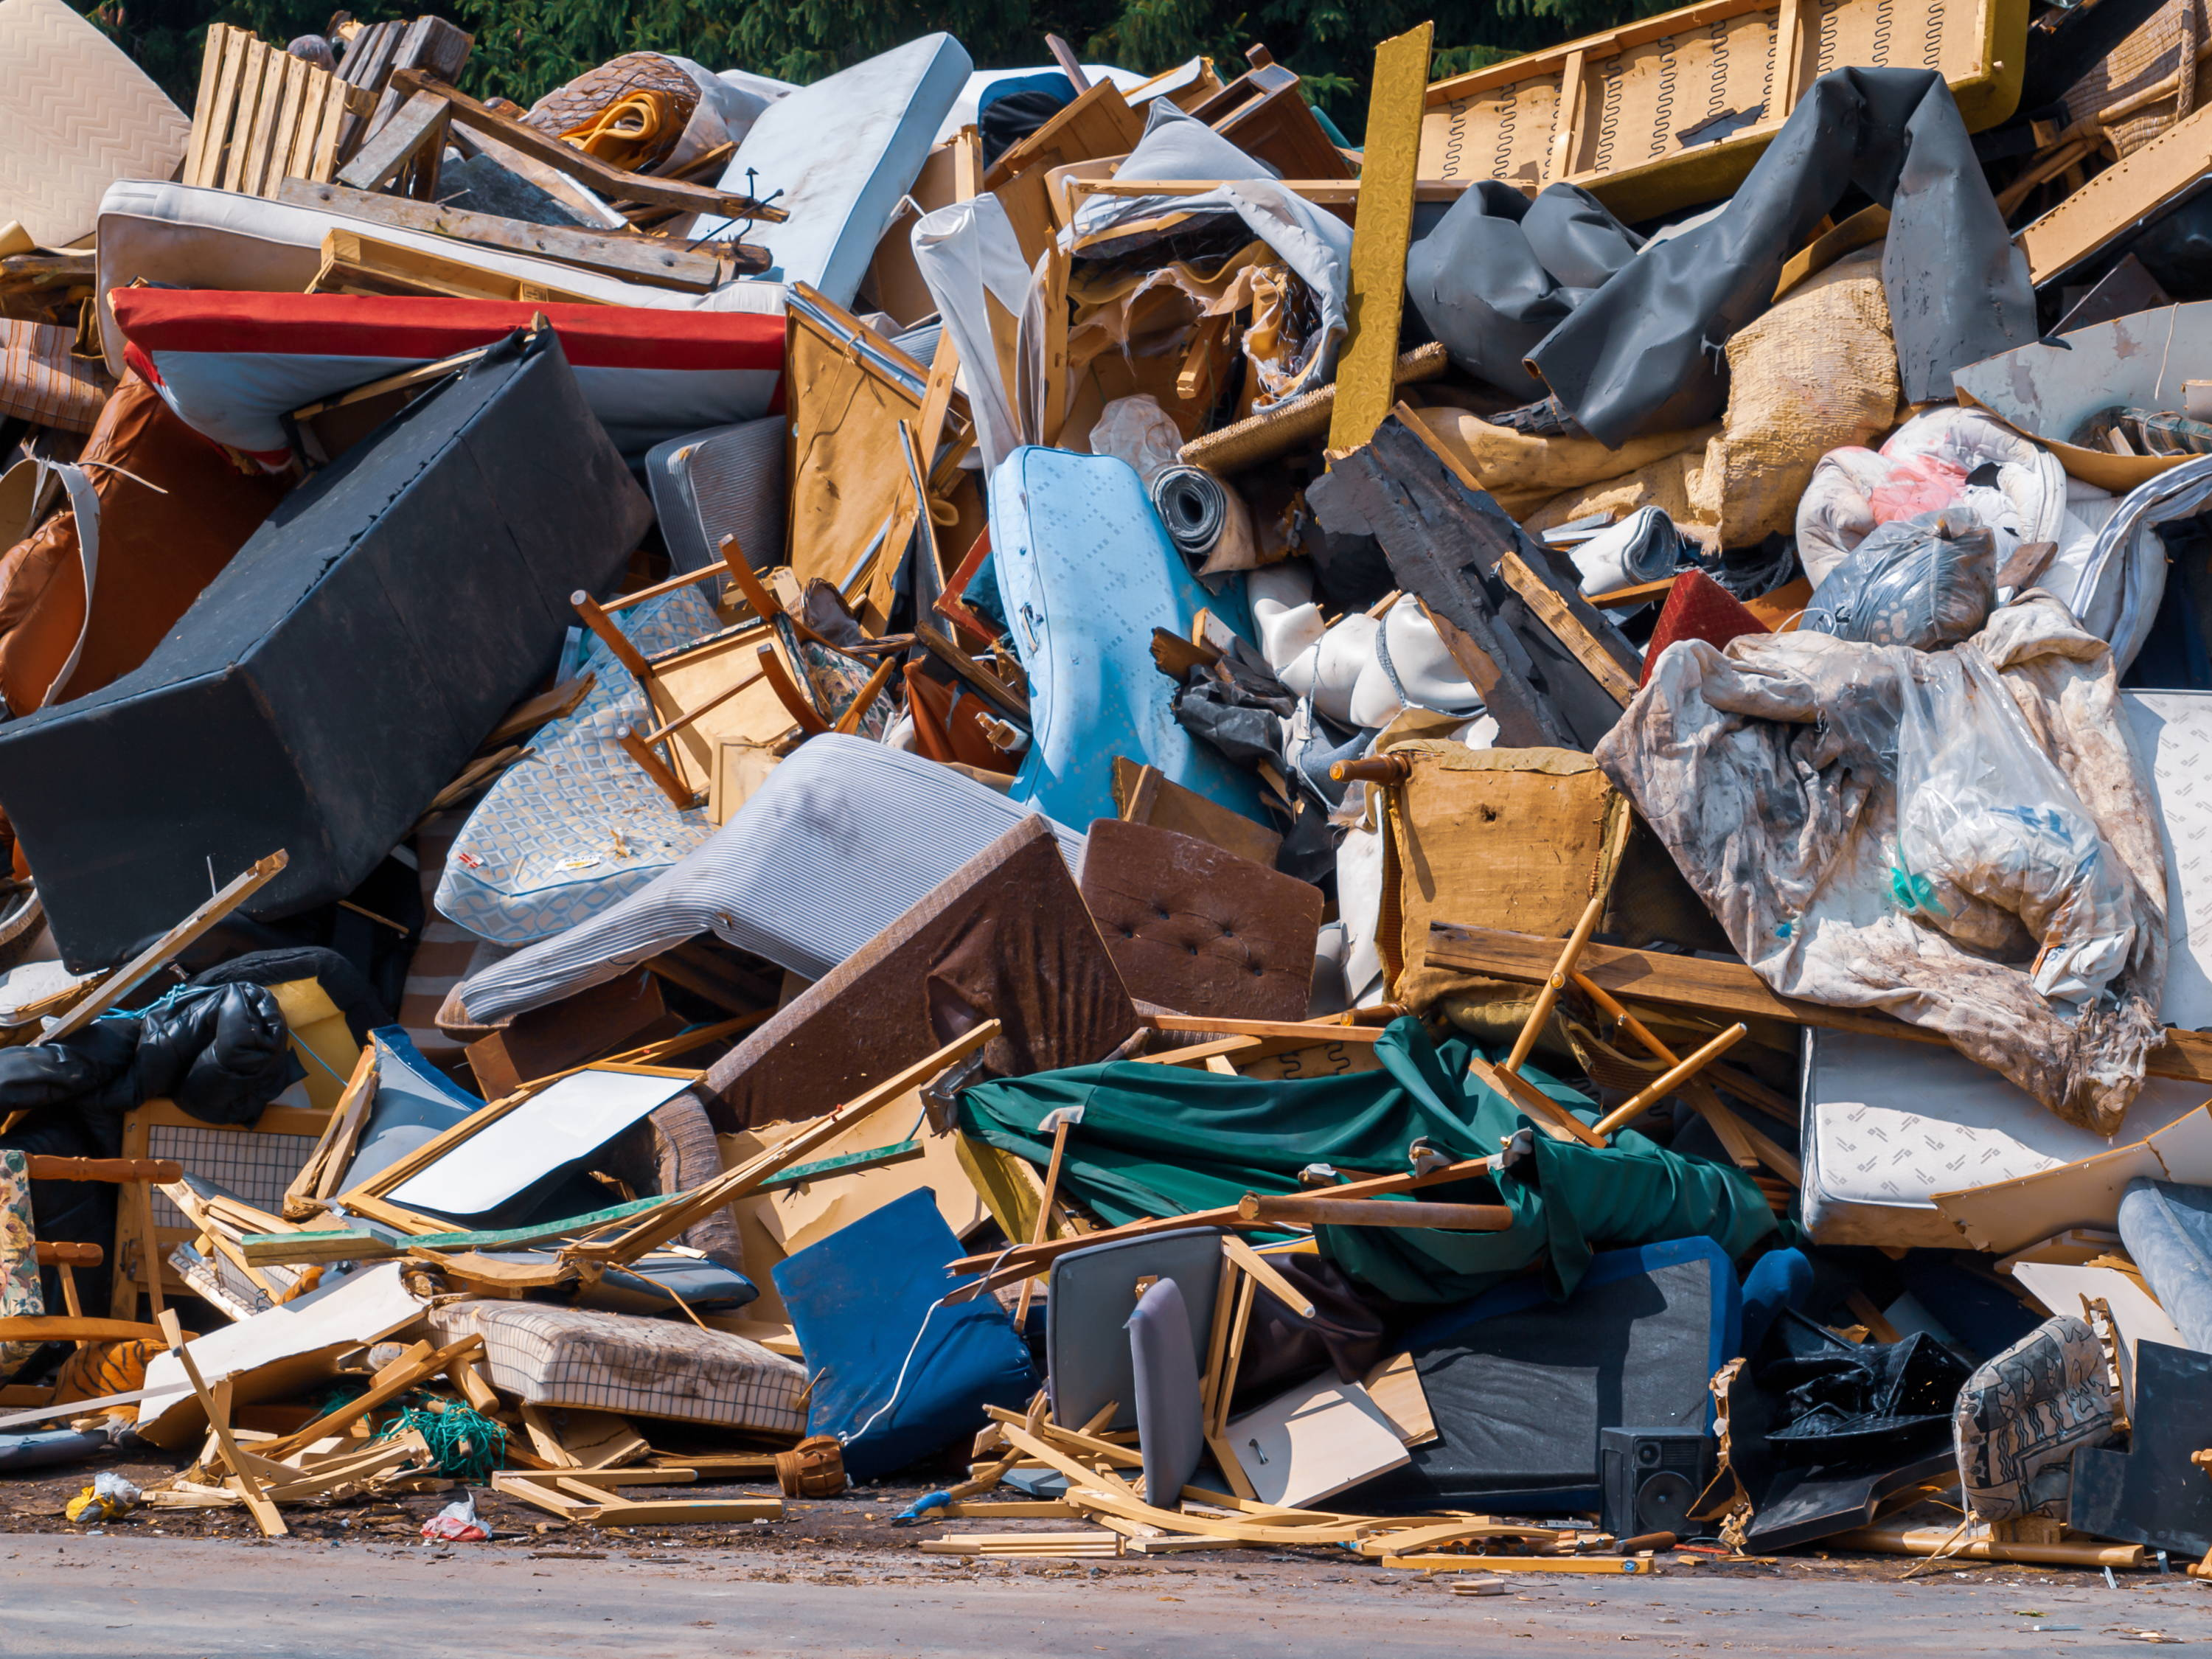 Furniture waste is a common feature of landfills. We're working to change that.